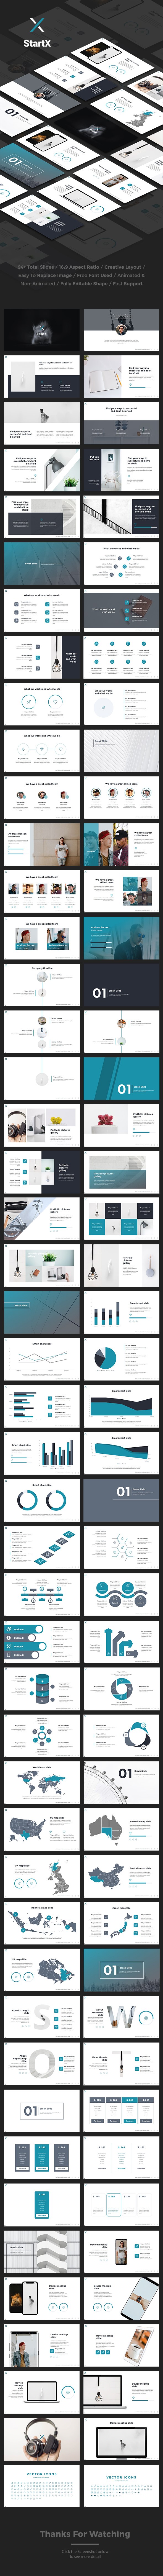 StartX - StartUp Pitch Deck Powerpoint Template - Pitch Deck PowerPoint Templates